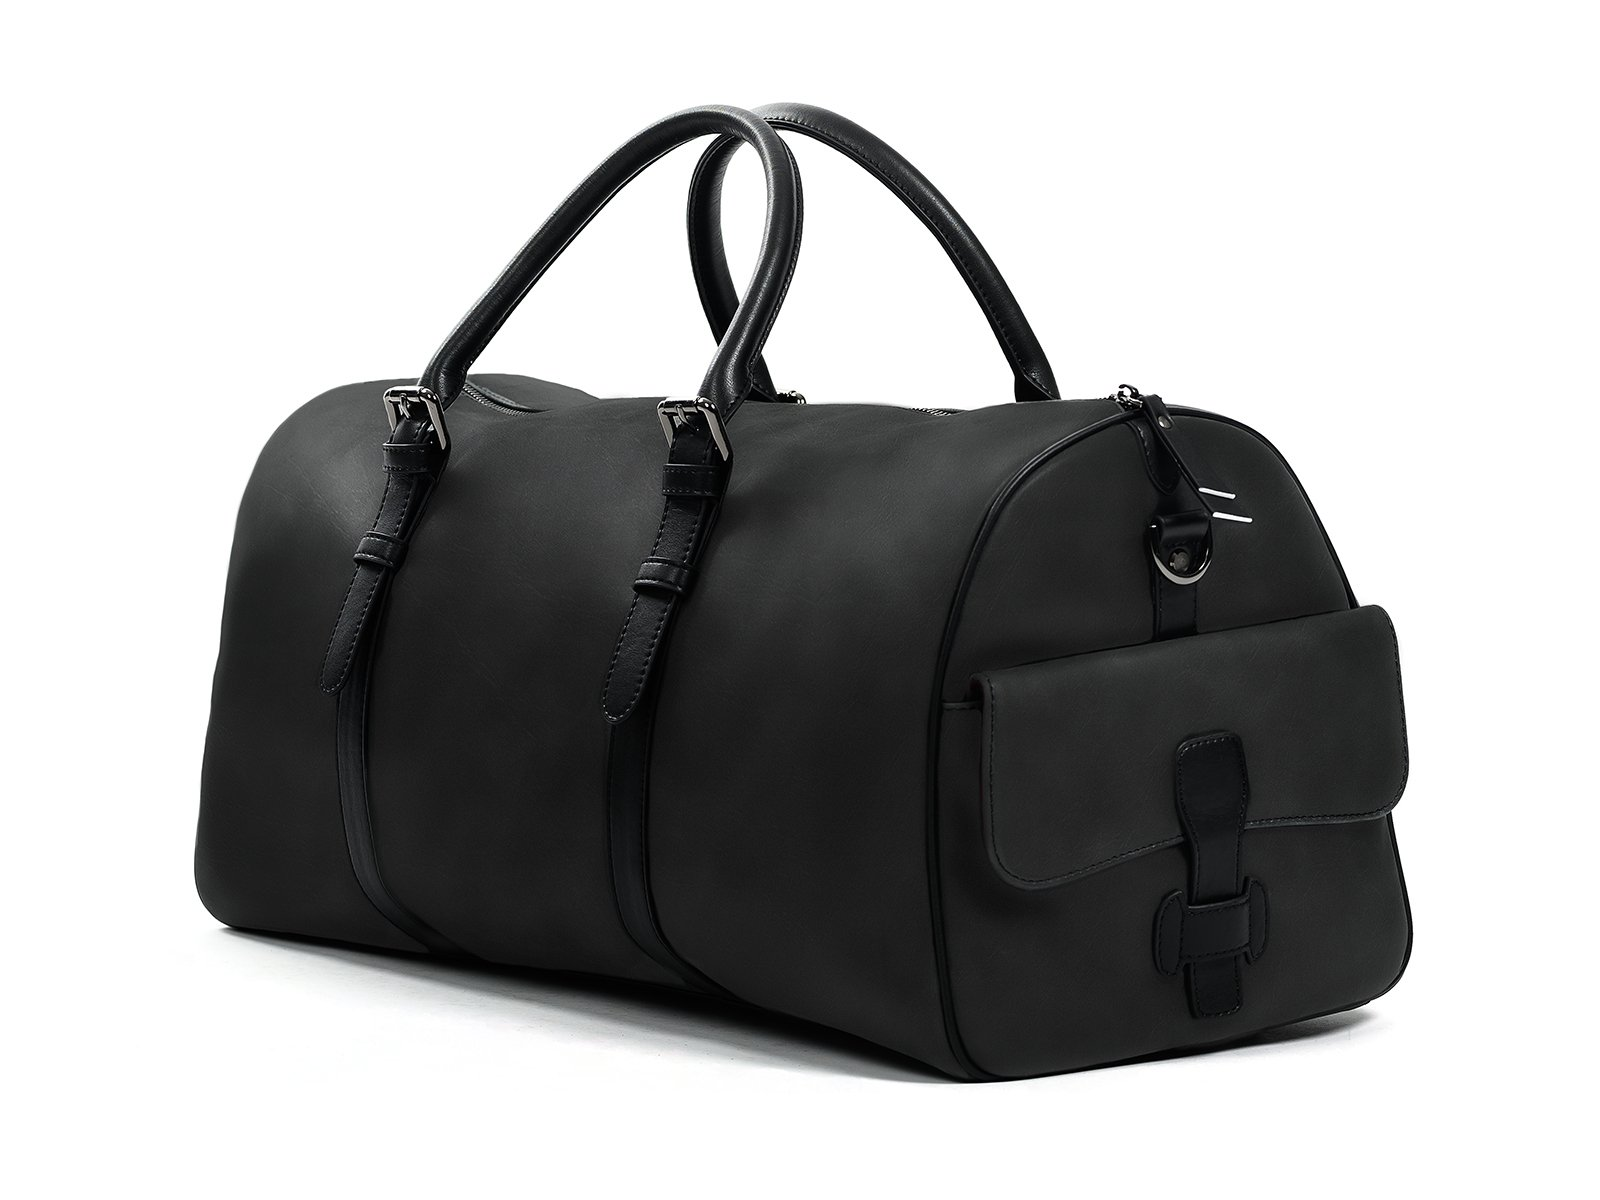 kingsman leather duffle bag